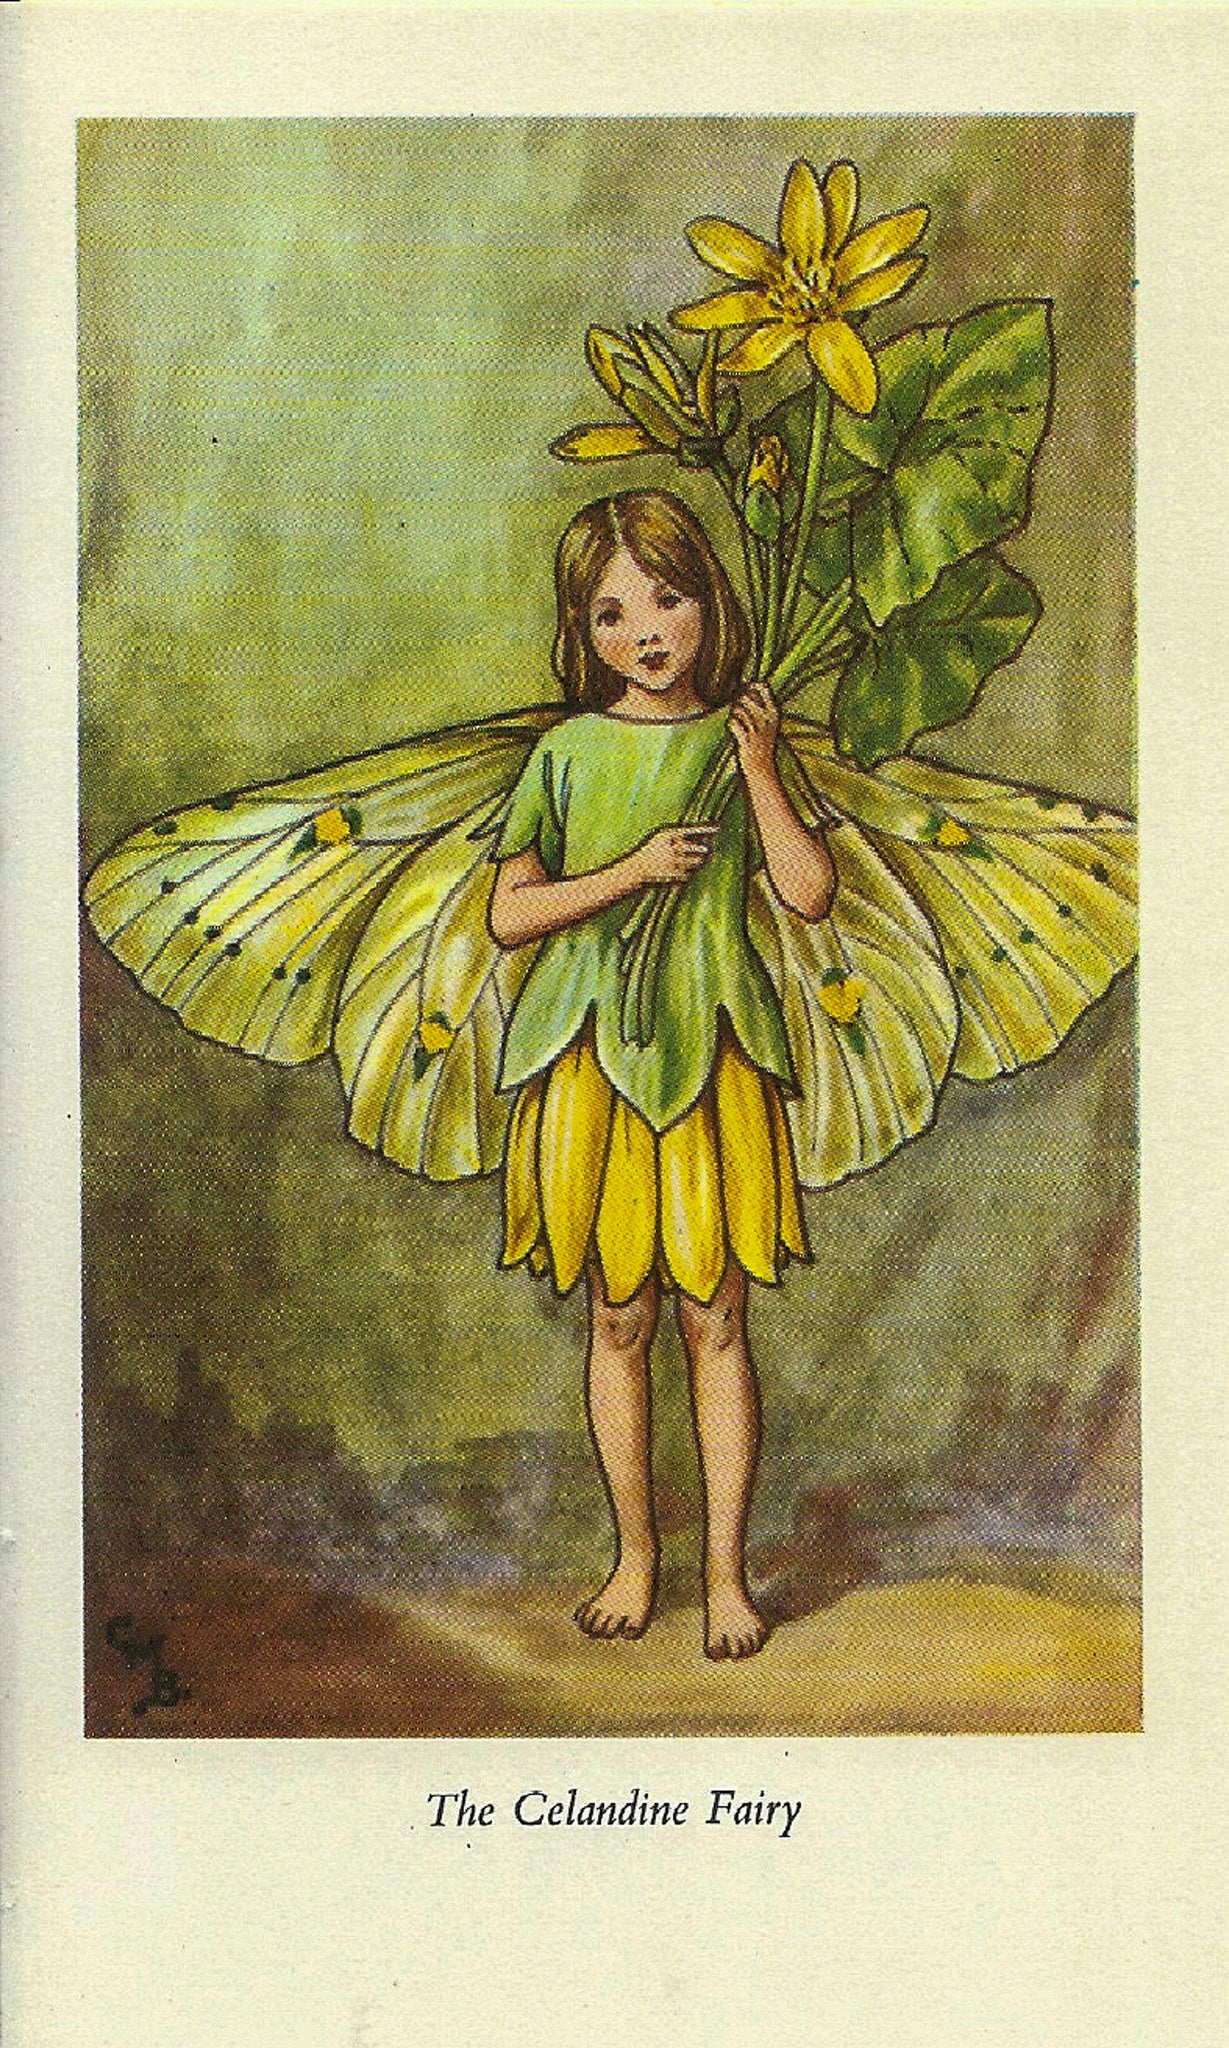 The Celandine Fairy Cicely Mary Barker Flower Fairies of the Spring Vintage book page Nursery Decor